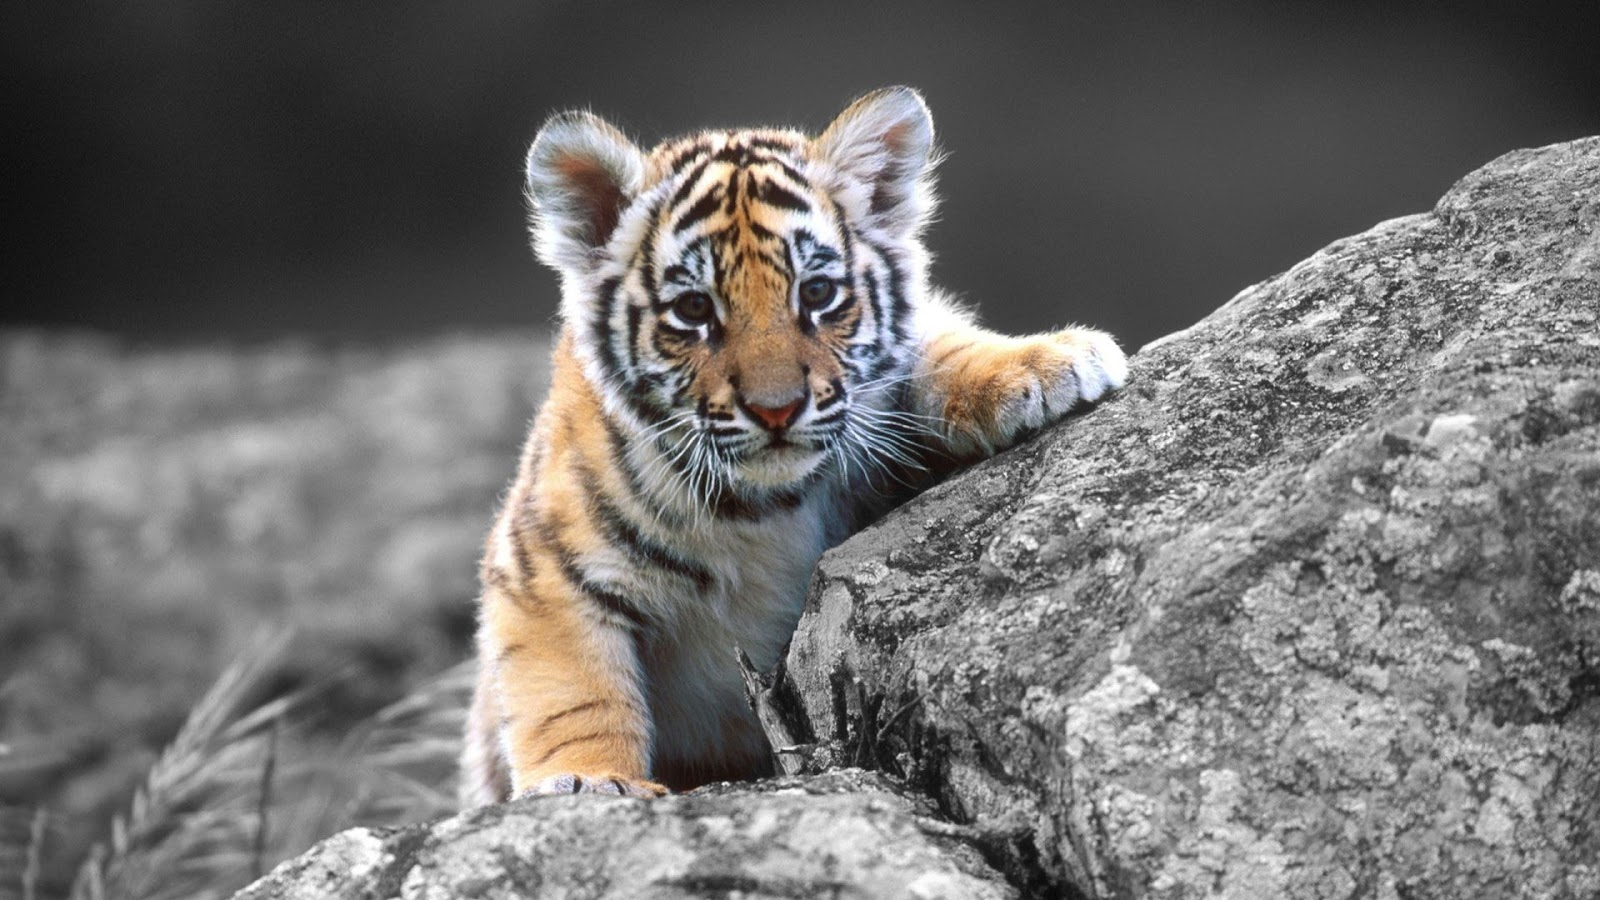 Wonderful Wallpaper Mobile Tiger - Tiger%2BFull%2BHD%2BWallpaper%2B1  HD_168498.jpg